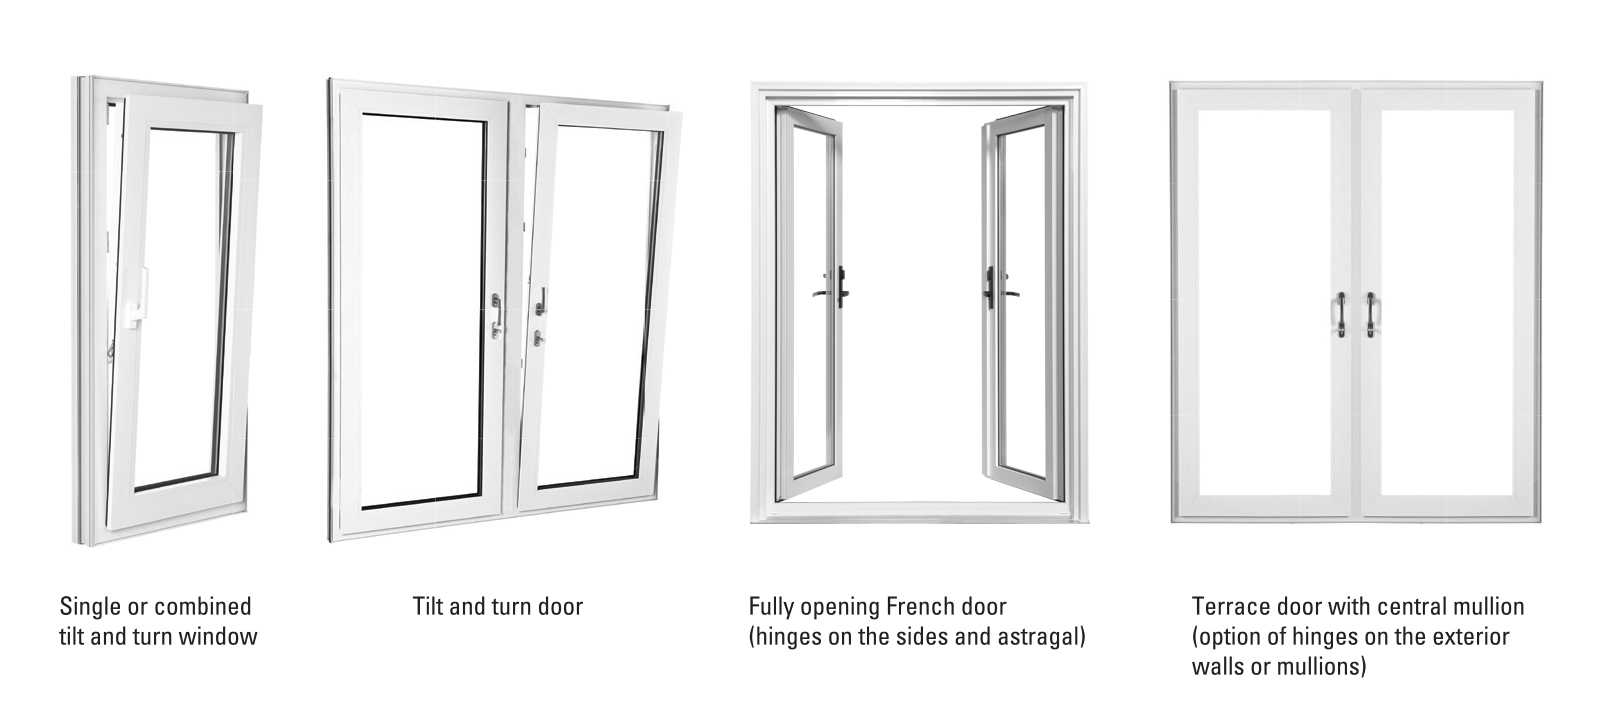 Tilt and Turn Styles | Strassburger Windows and Doors